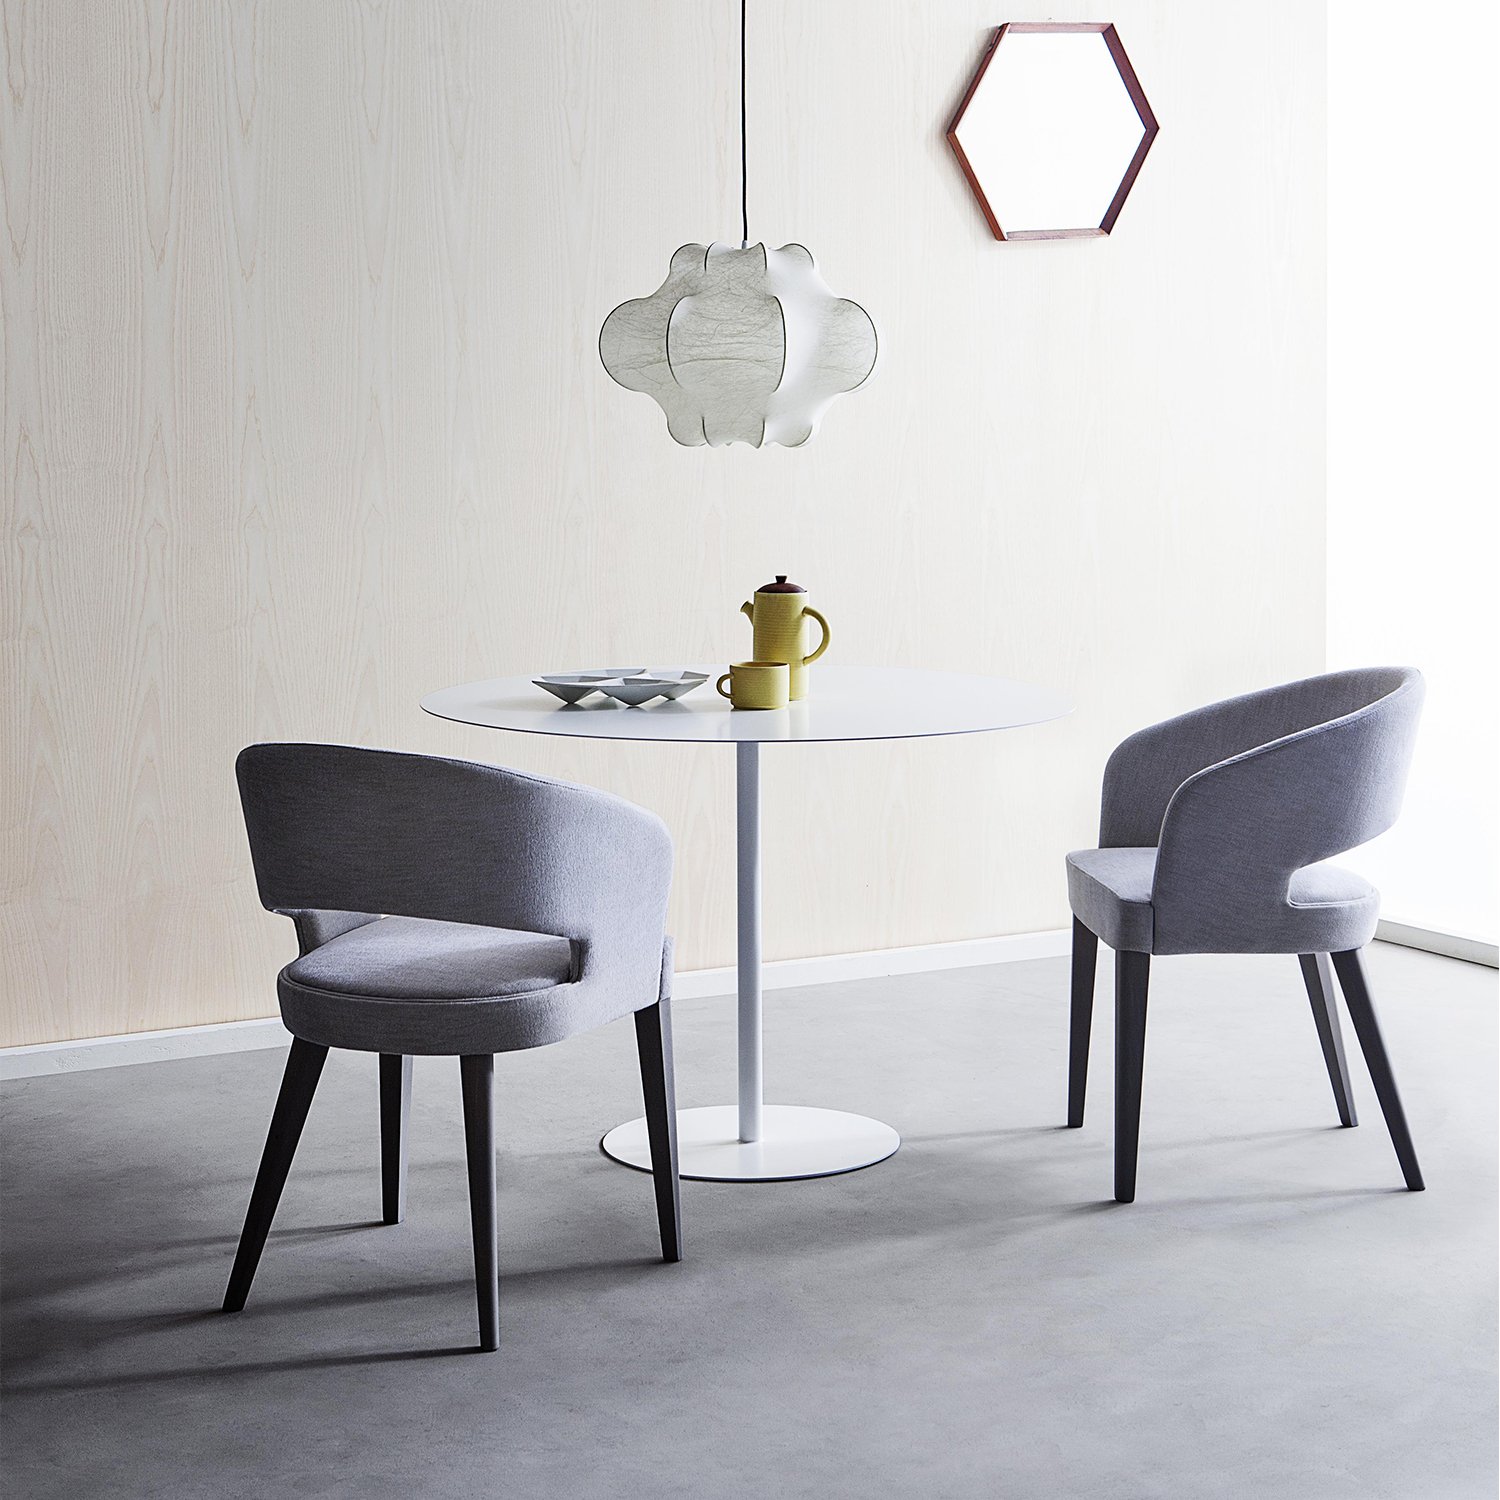 Ray 262 - ORIGINS 1971 COLLECTION BY PALMA - The shell of these small armchairs and stools has a wide opening at the upholstered seat. A feature which, as well as lightening the overall design of the seat, facilitates its movement, a particularly popular bonus in contract furnishing.